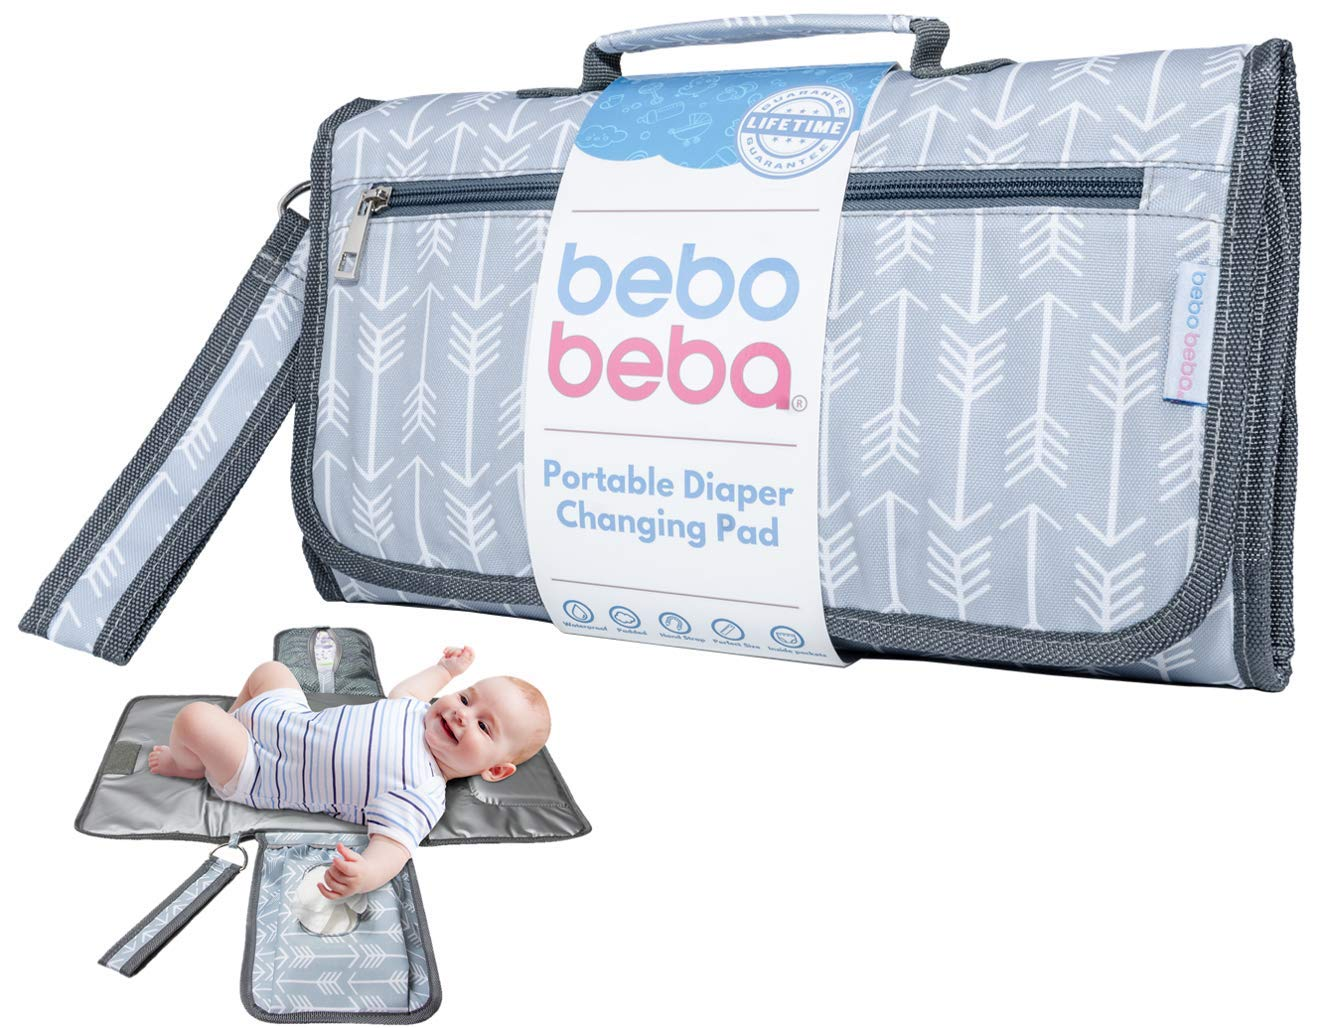 Baby Portable Changing Pad   Waterproof   Foldable Pad with Stroller Strap & Pocket for Diapers & Wipes   Changing Organizer Bag for Toddlers Infants & Newborns   Perfect Baby Shower Gift